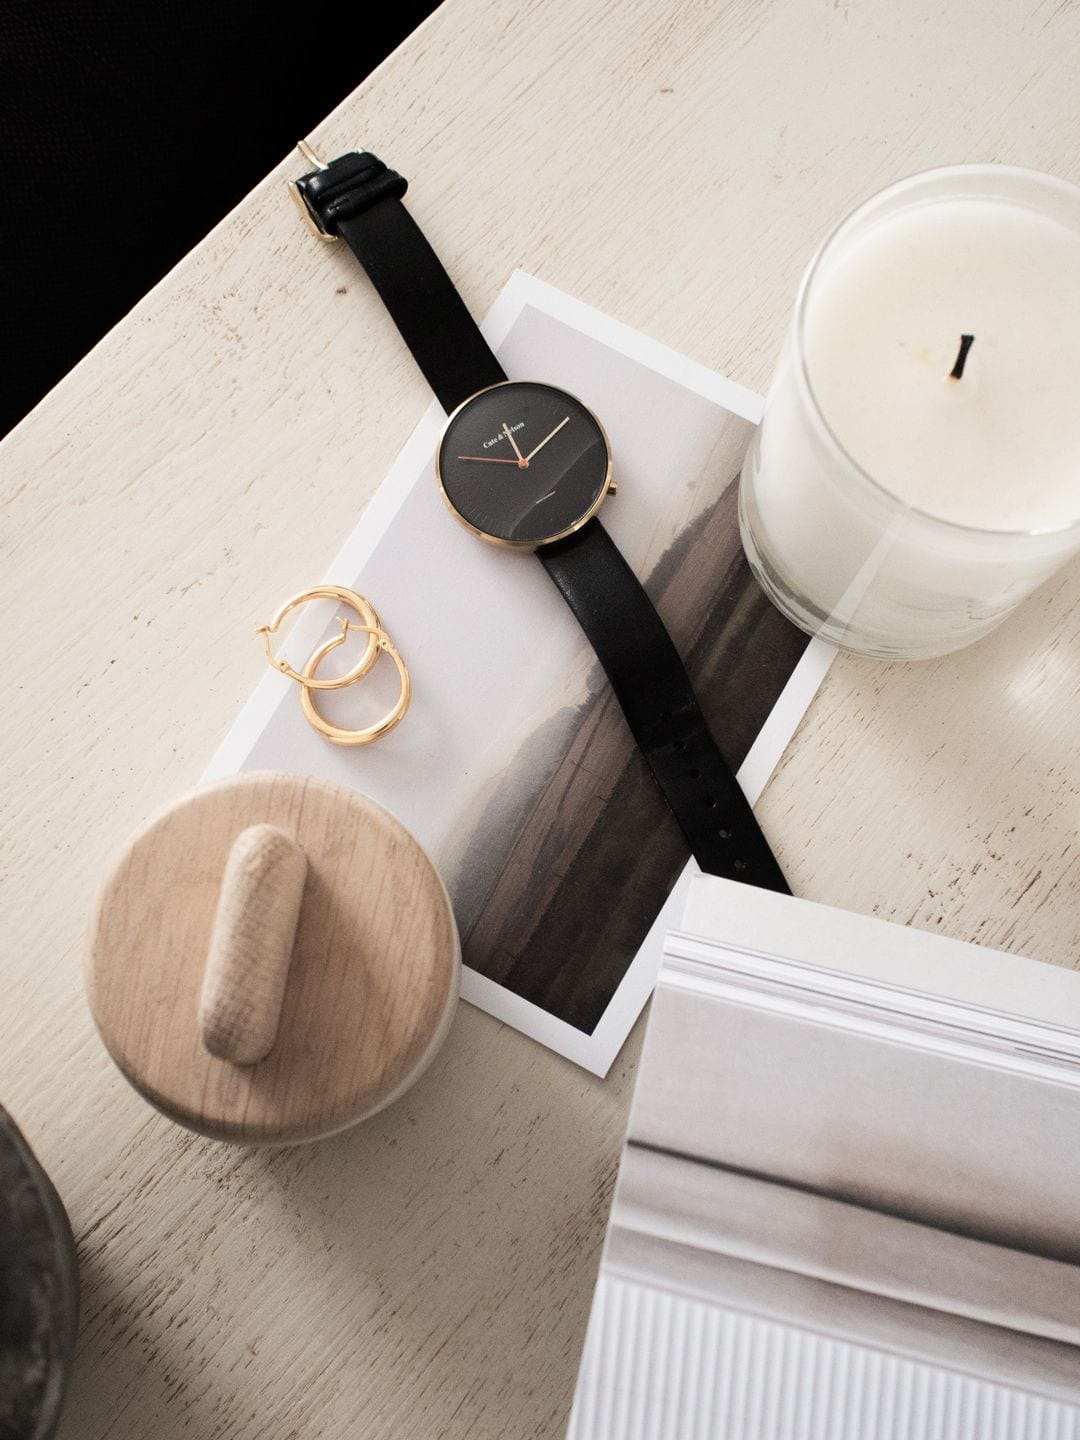 Skagerak pot, Cate & Nelson watch, Otiumberg gold hoops, The White Company Sandlewood candle, Cereal magazine